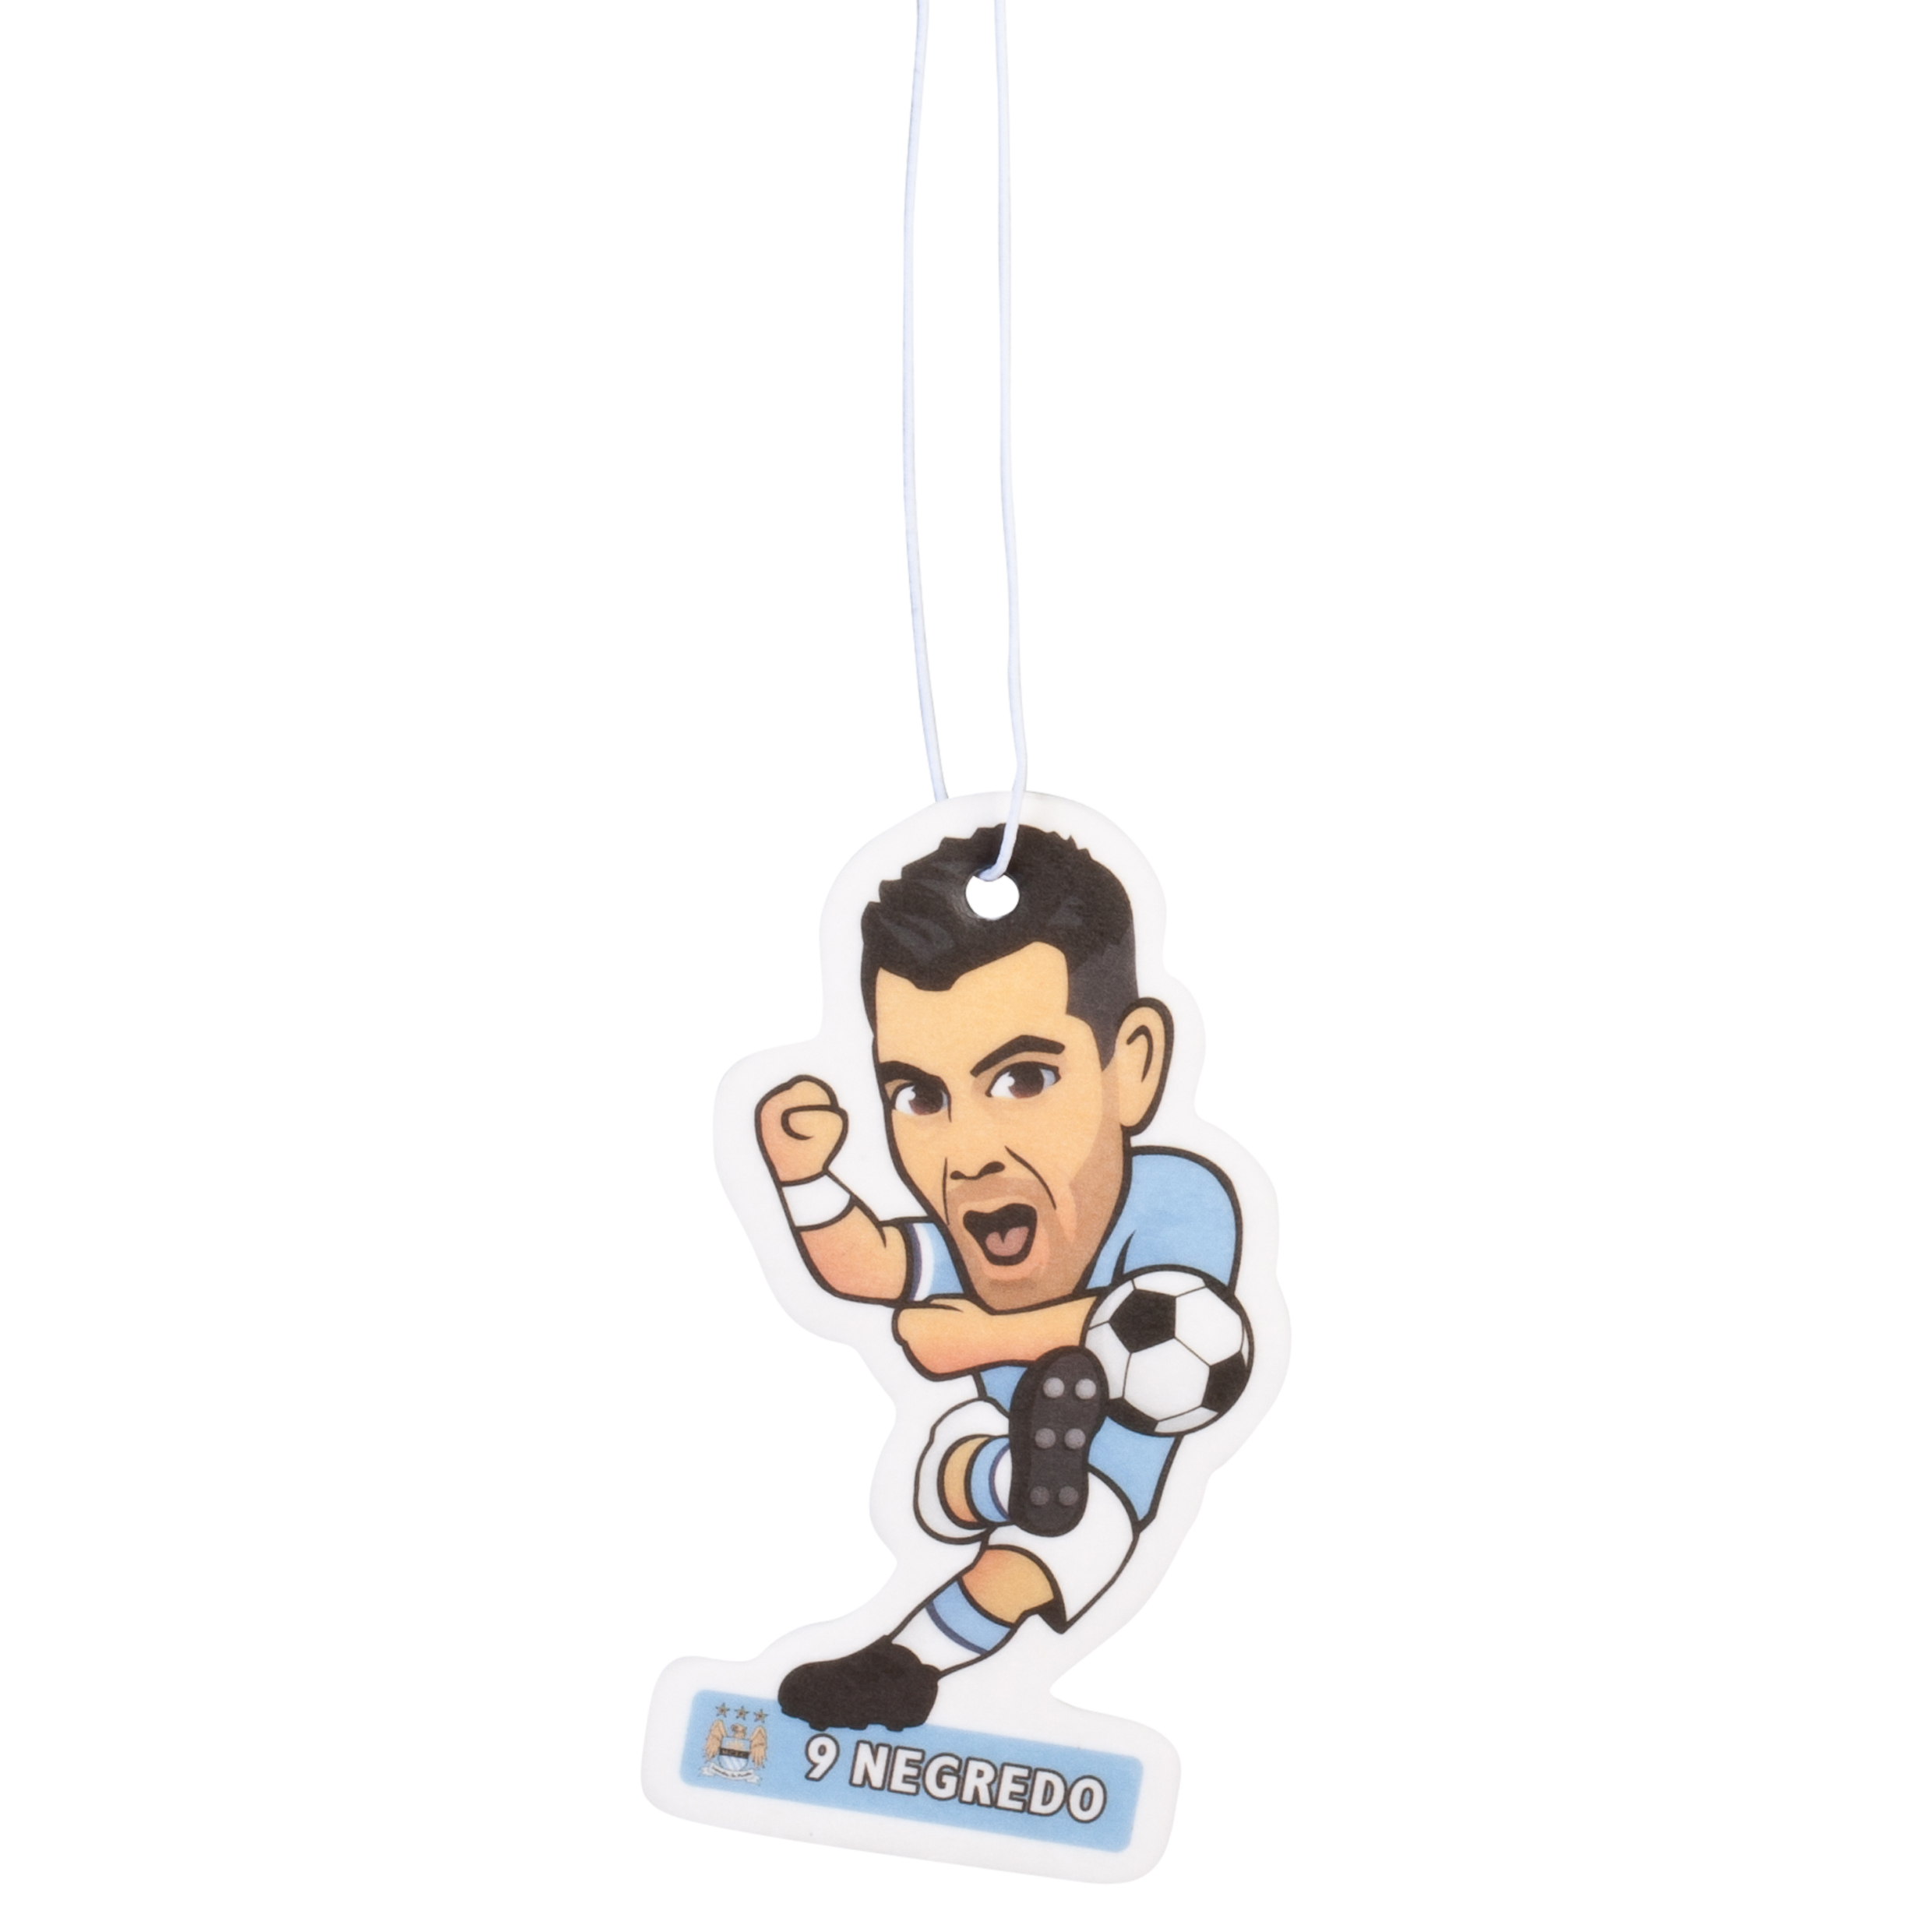 Manchester City Negredo Air Freshener